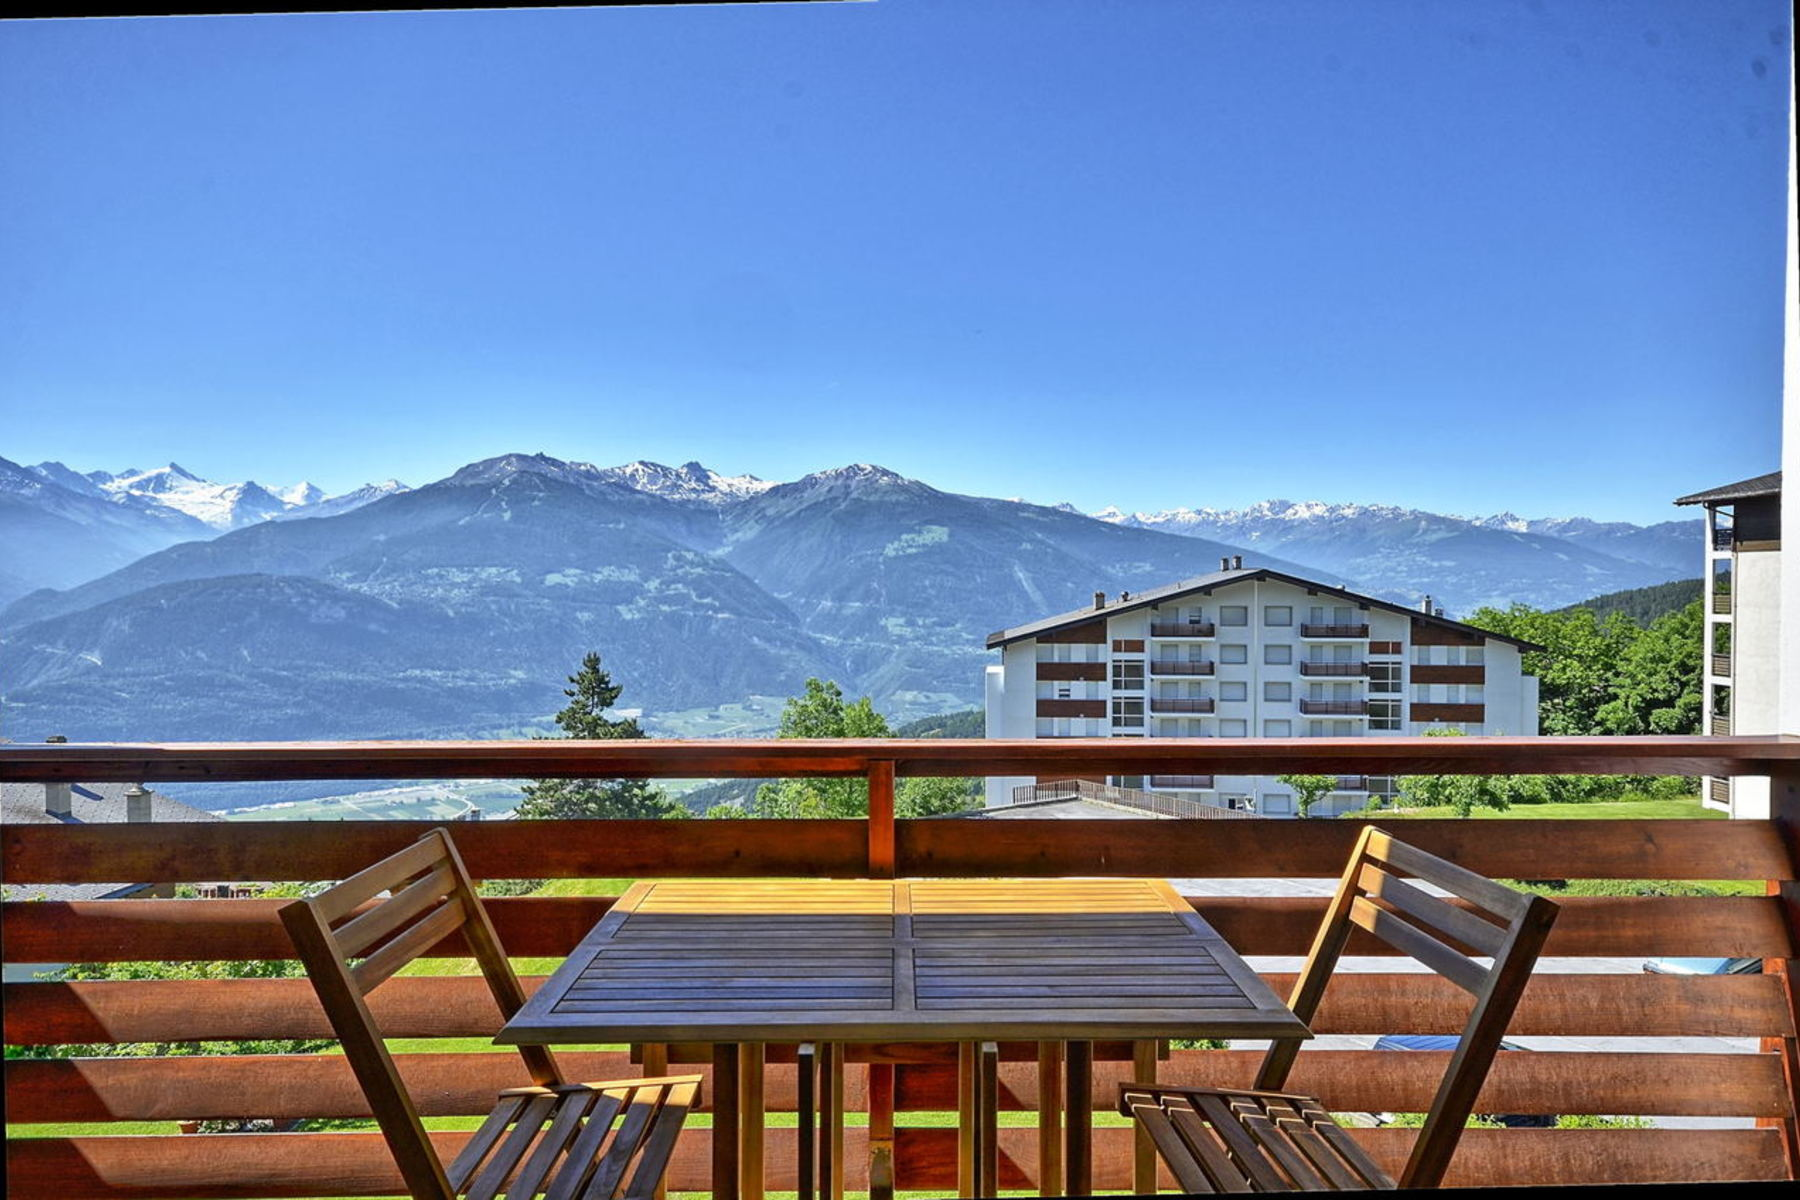 Apartment for Sale at CRANS-MONTANA, Europa 1, 2.5 rooms in peace with view, swimming pool Route d'Europa 1 Crans, Valais 3963 Switzerland